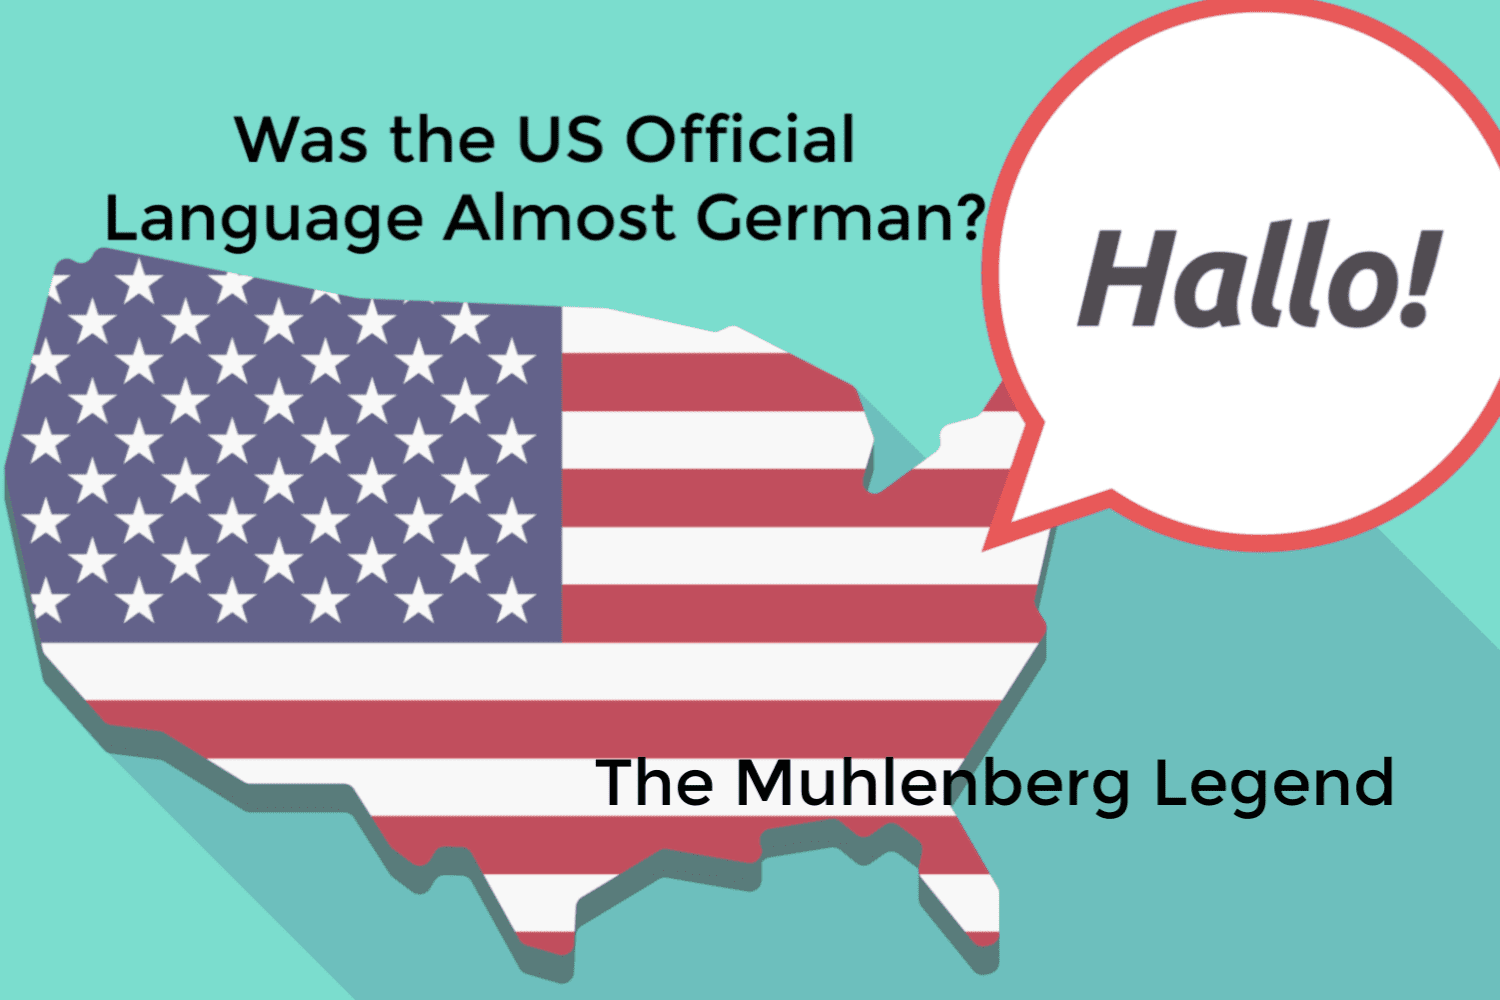 Was the US Official Language Almost German? The Muhlenberg Legend